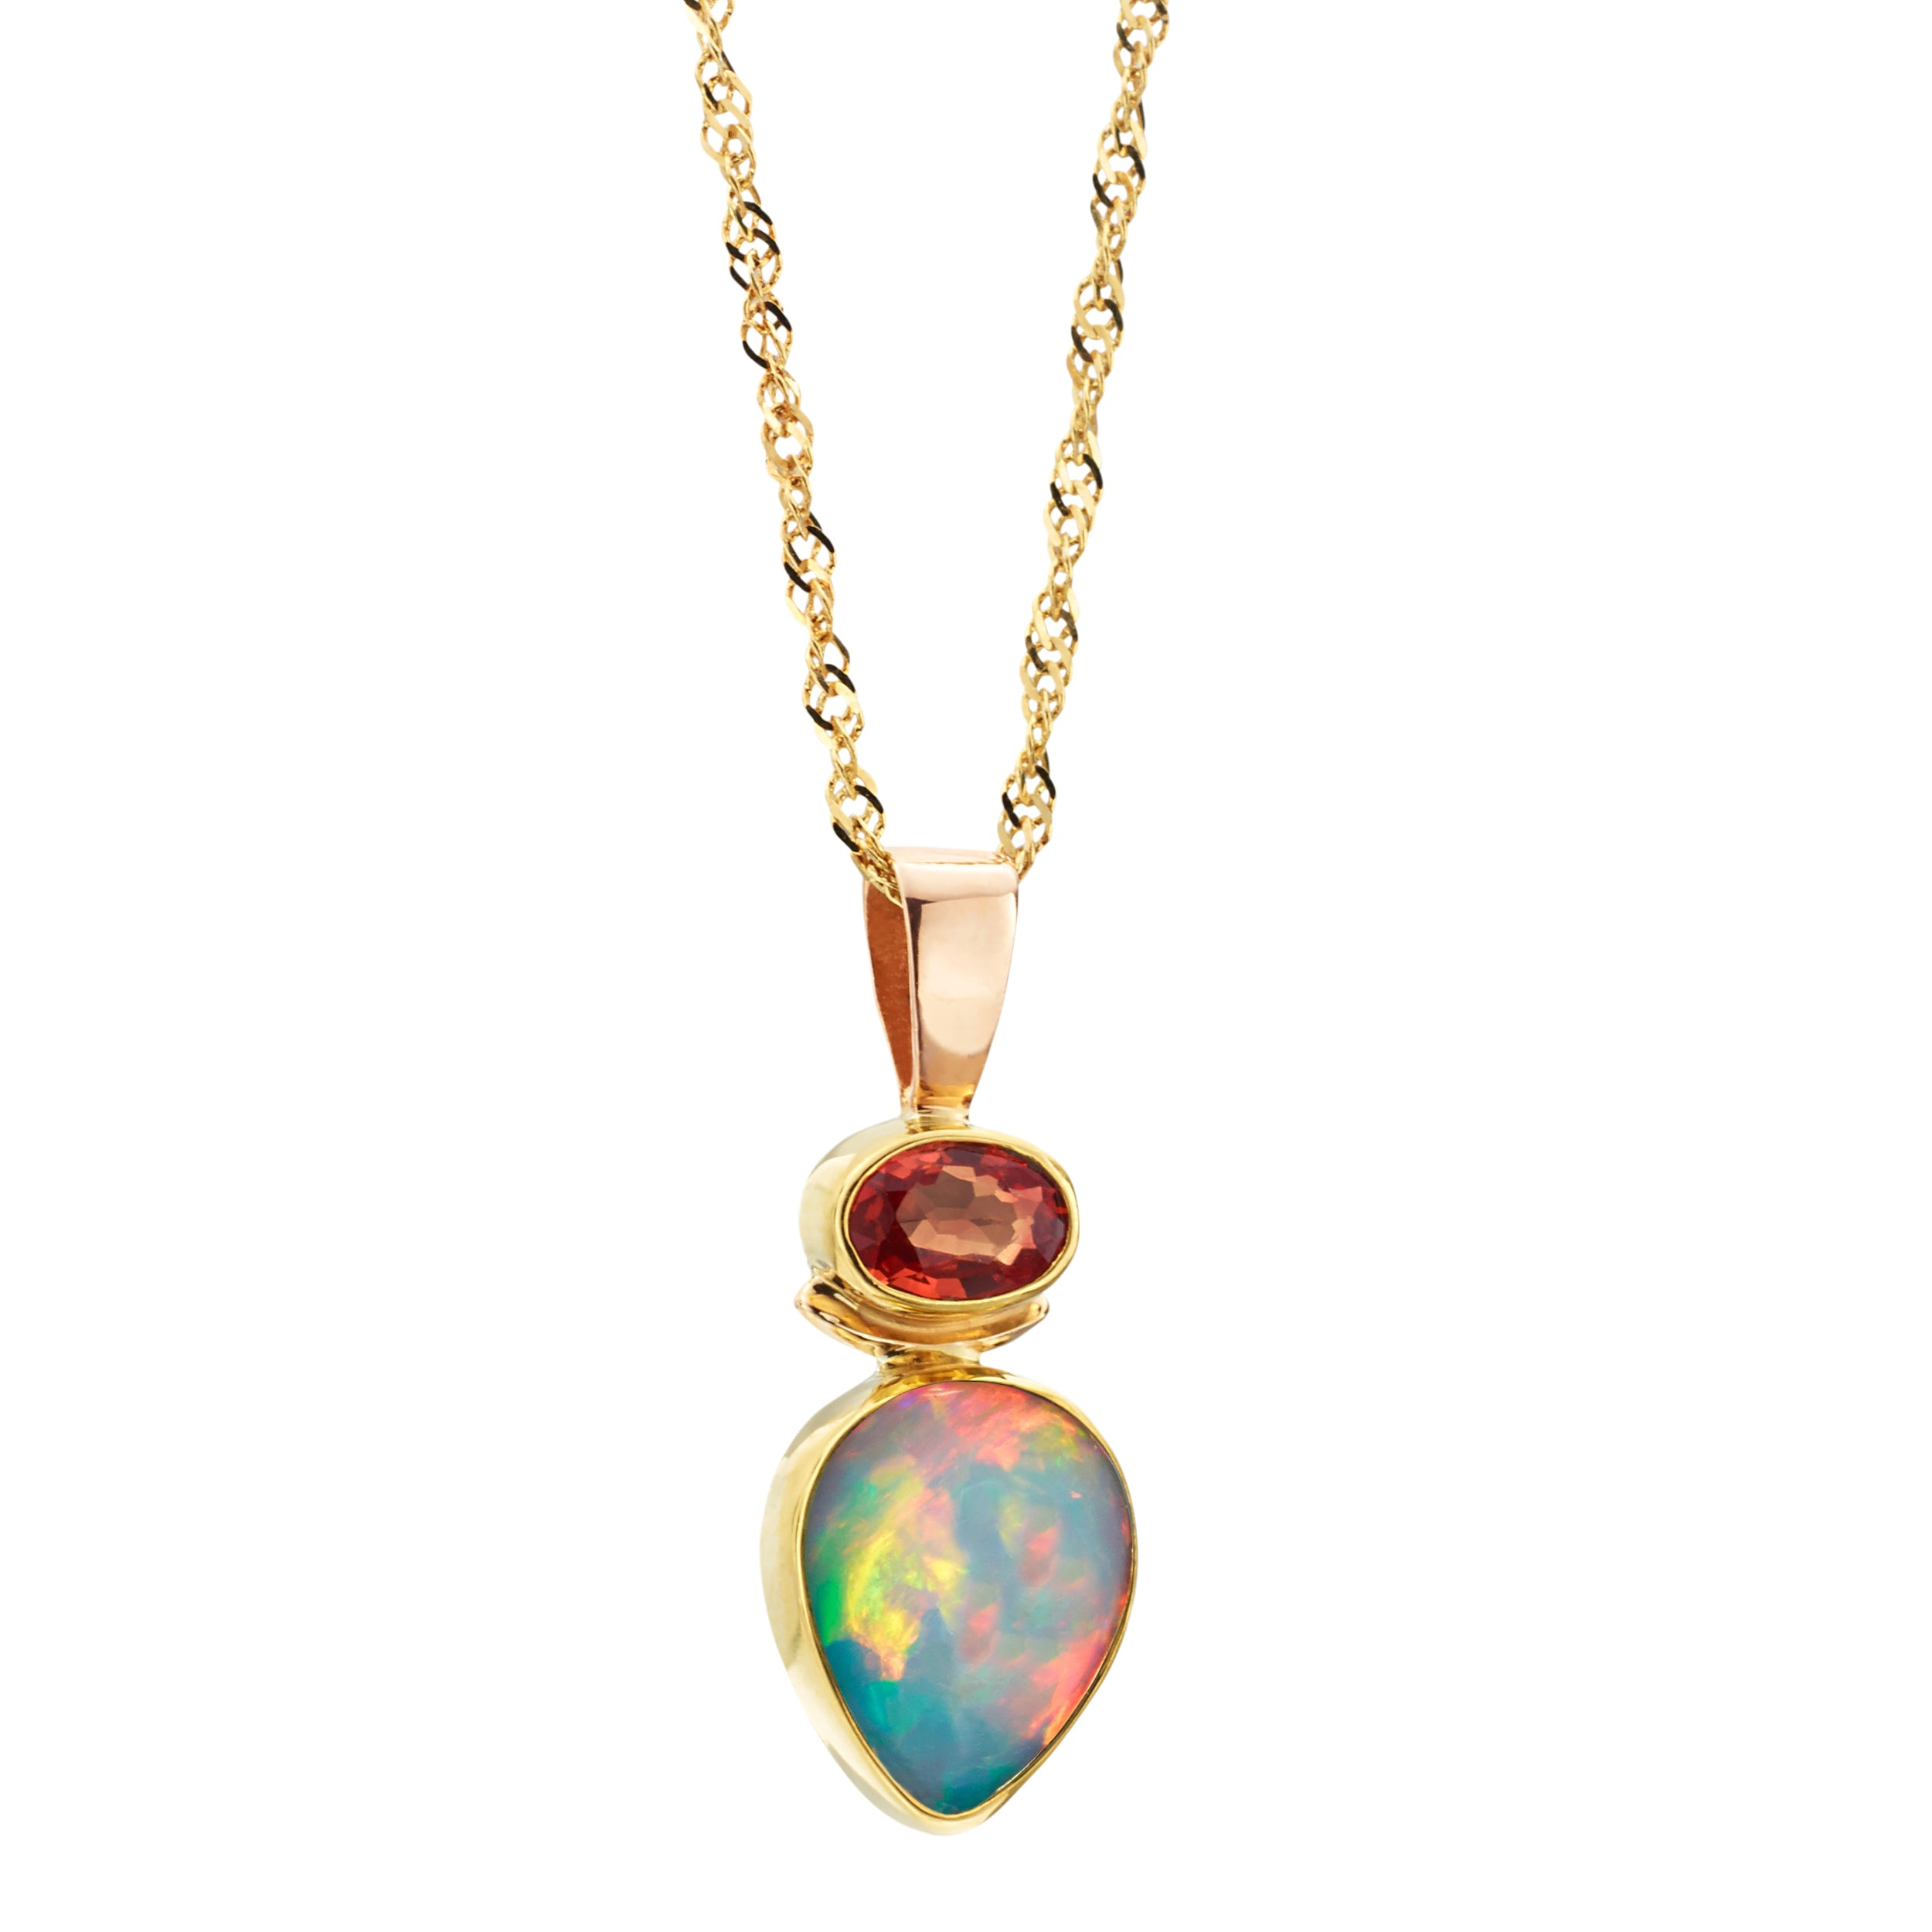 Ethiopian Opal Teardrop Pendant Necklace in 14K Yellow Gold with Garnet